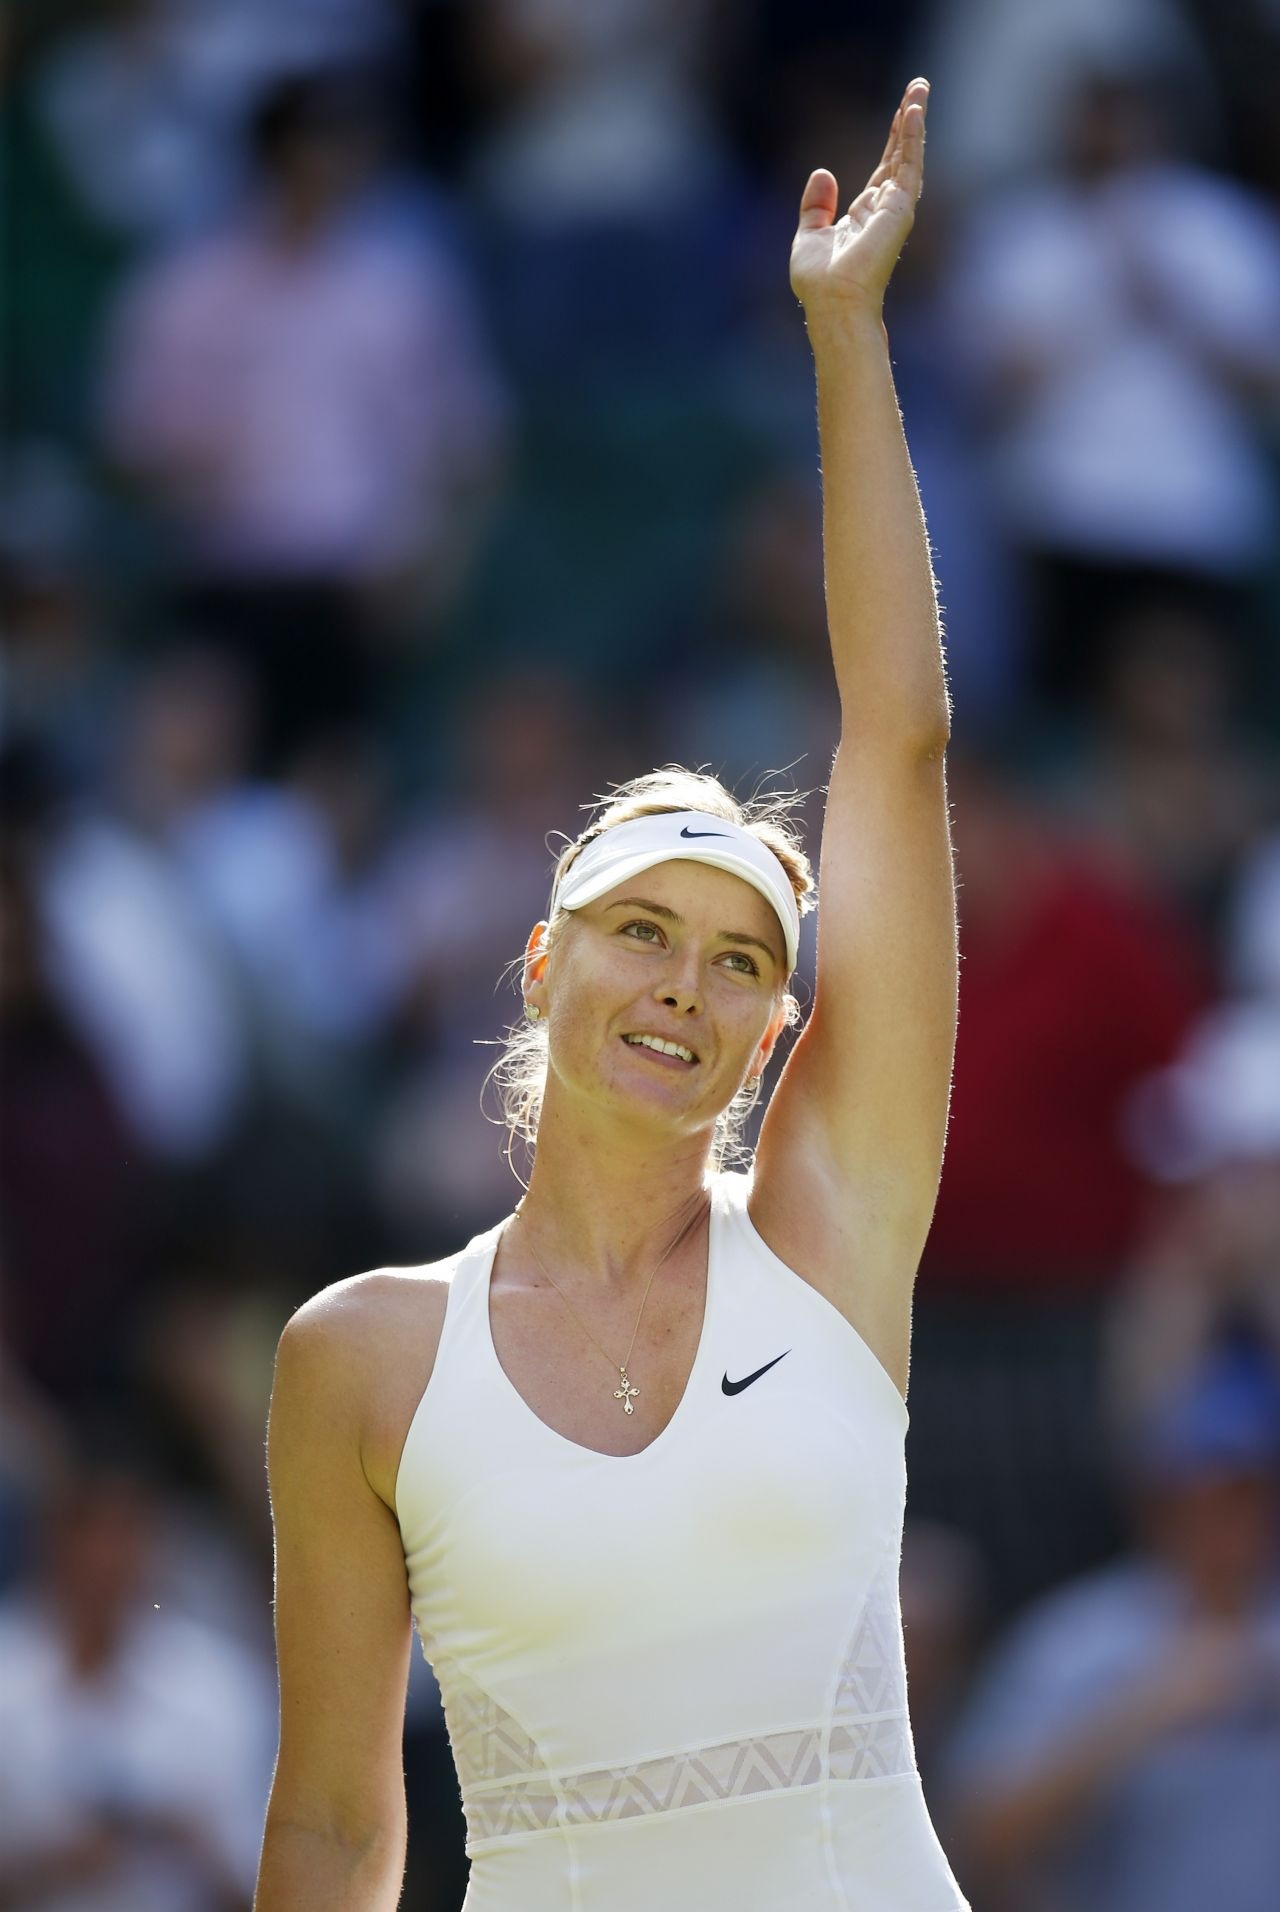 All Maria Sharapovas Wimbledon dresses rated: Which is